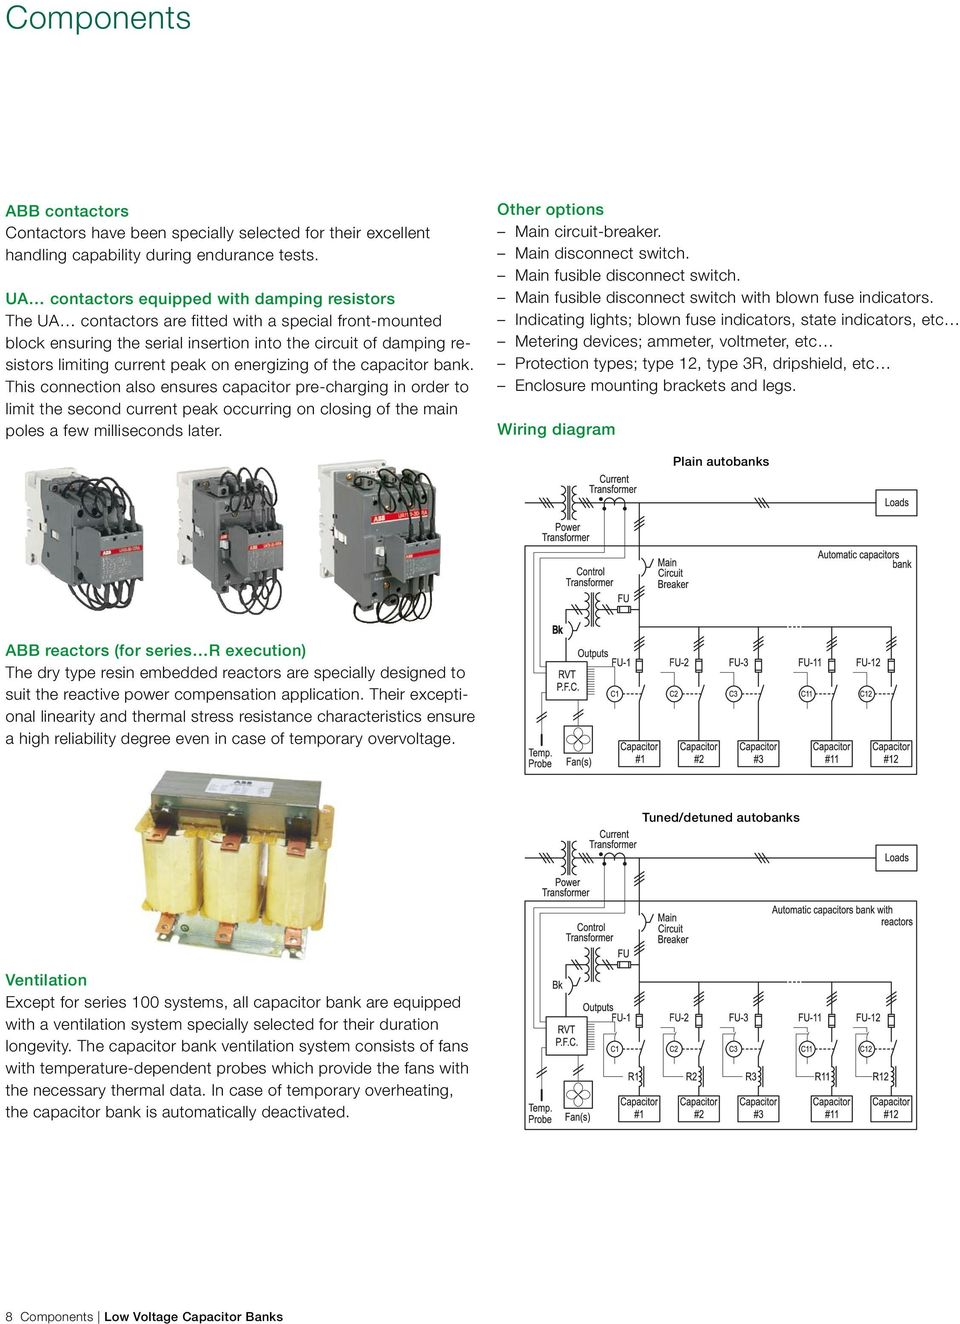 Abb Limit Indicator Wiring Diagram Detailed Schematics Ach550 Low Voltage Products Capacitor Banks Power Factor Balluff